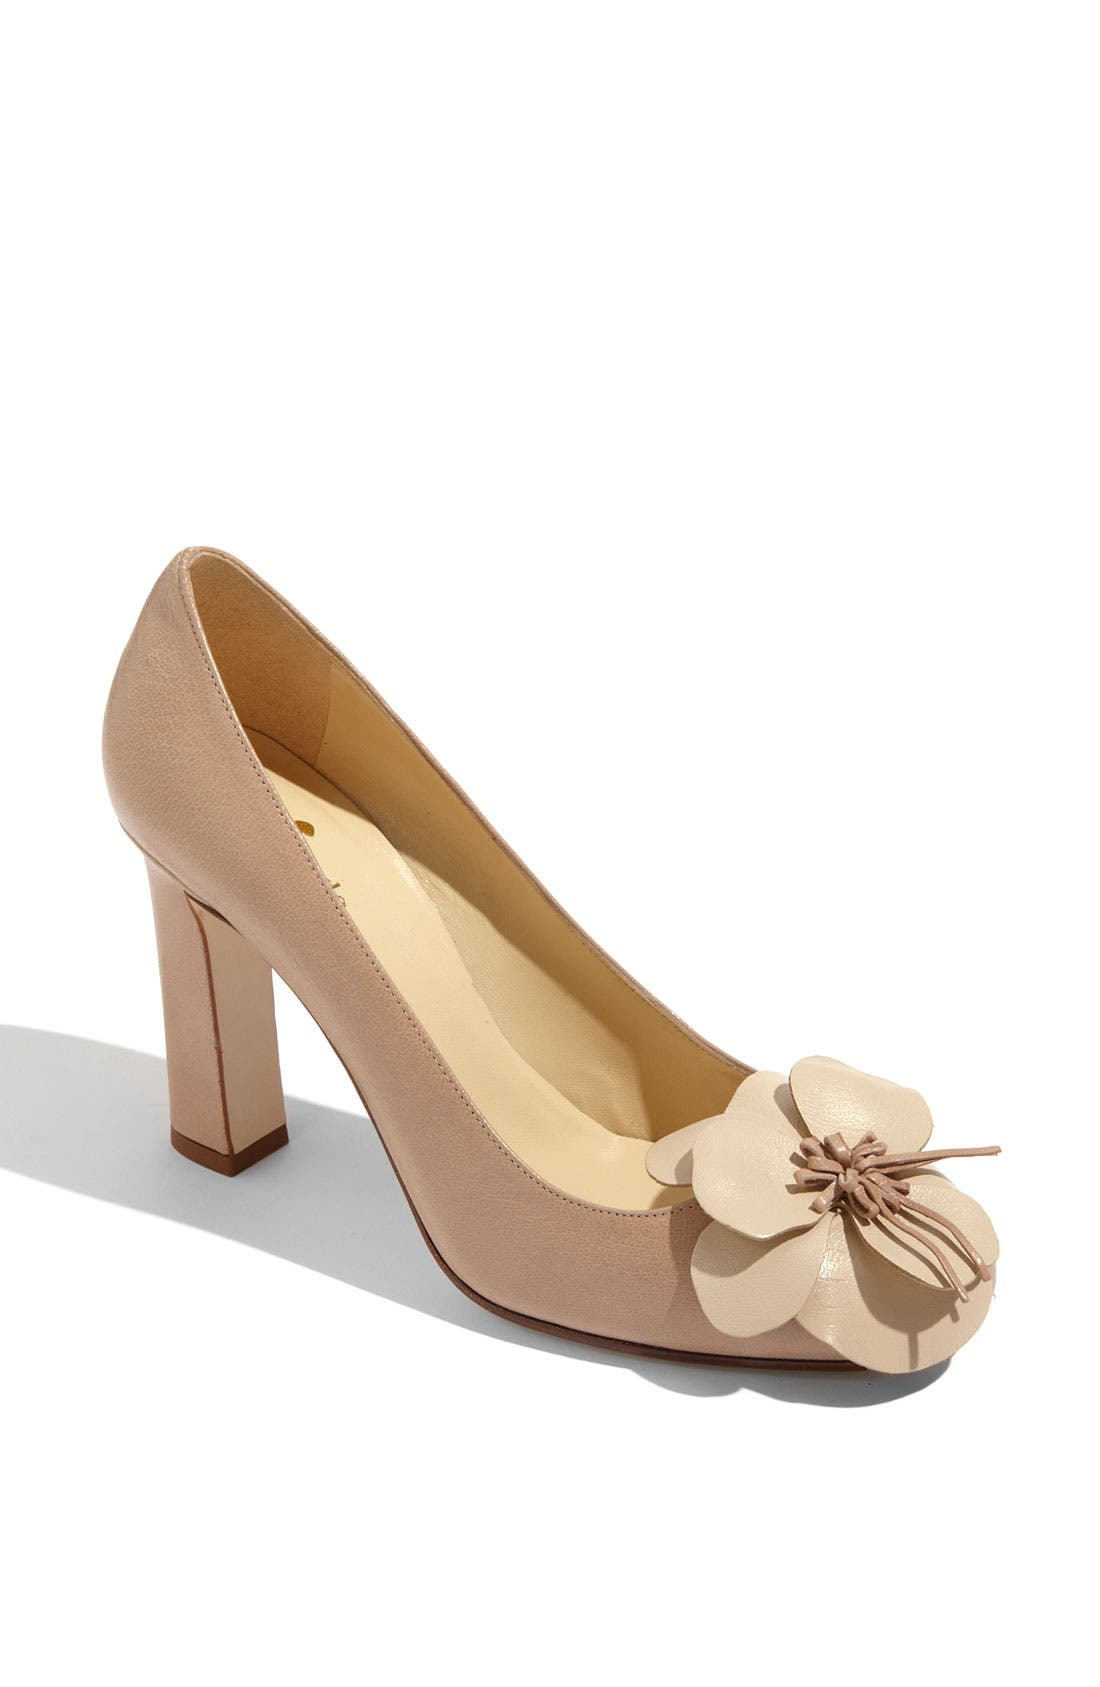 Main Image - kate spade new york 'zaria' pump